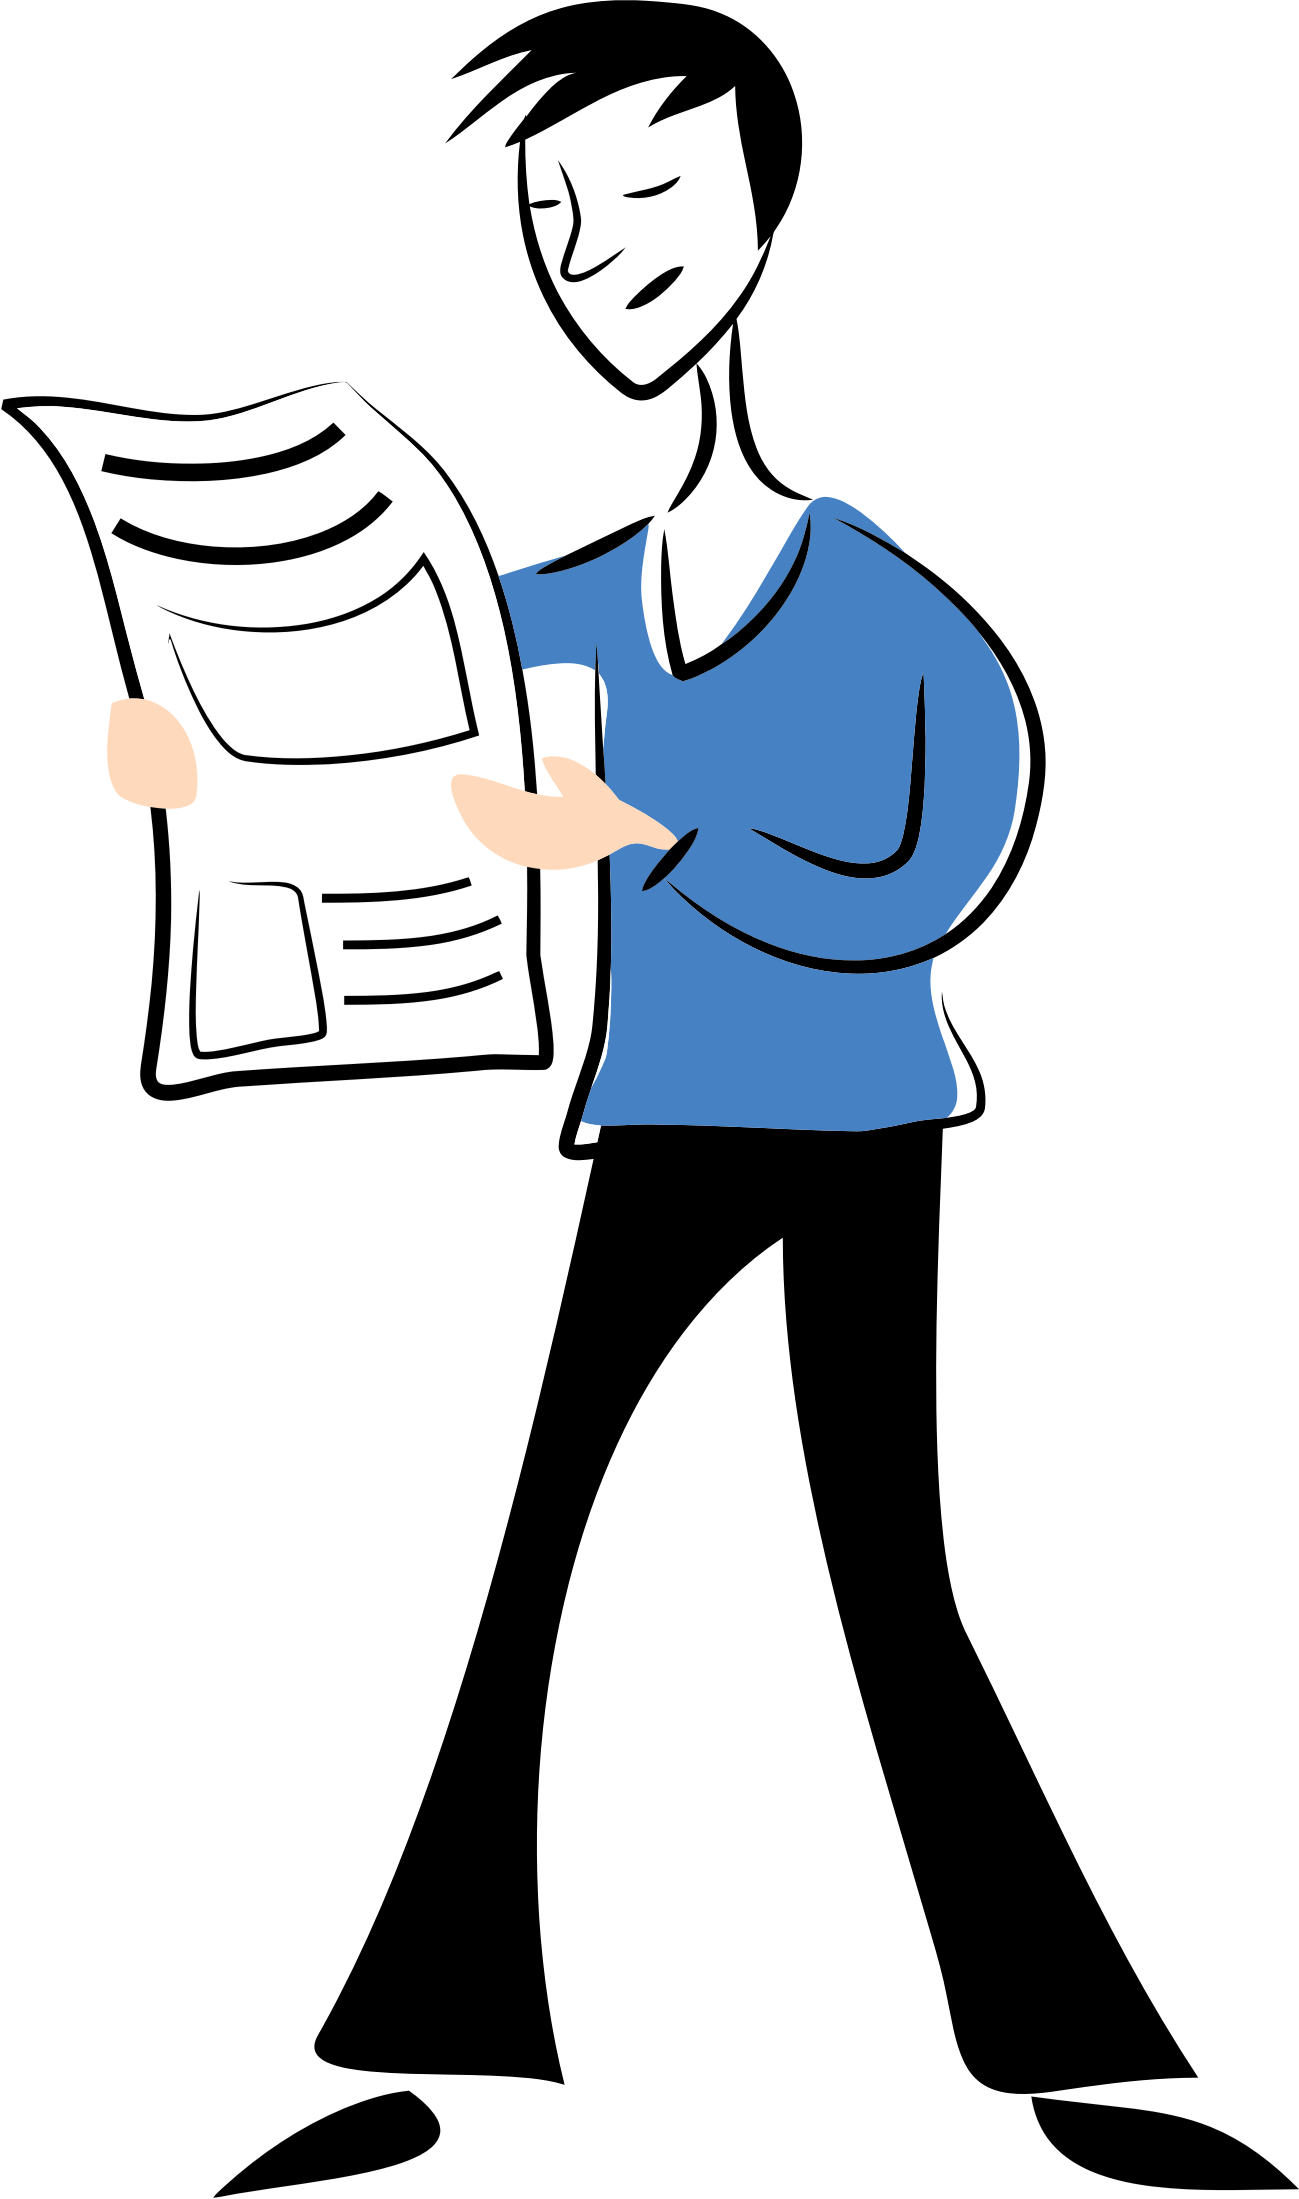 clipart black and white Man reading newspaper clipart. Big image png.